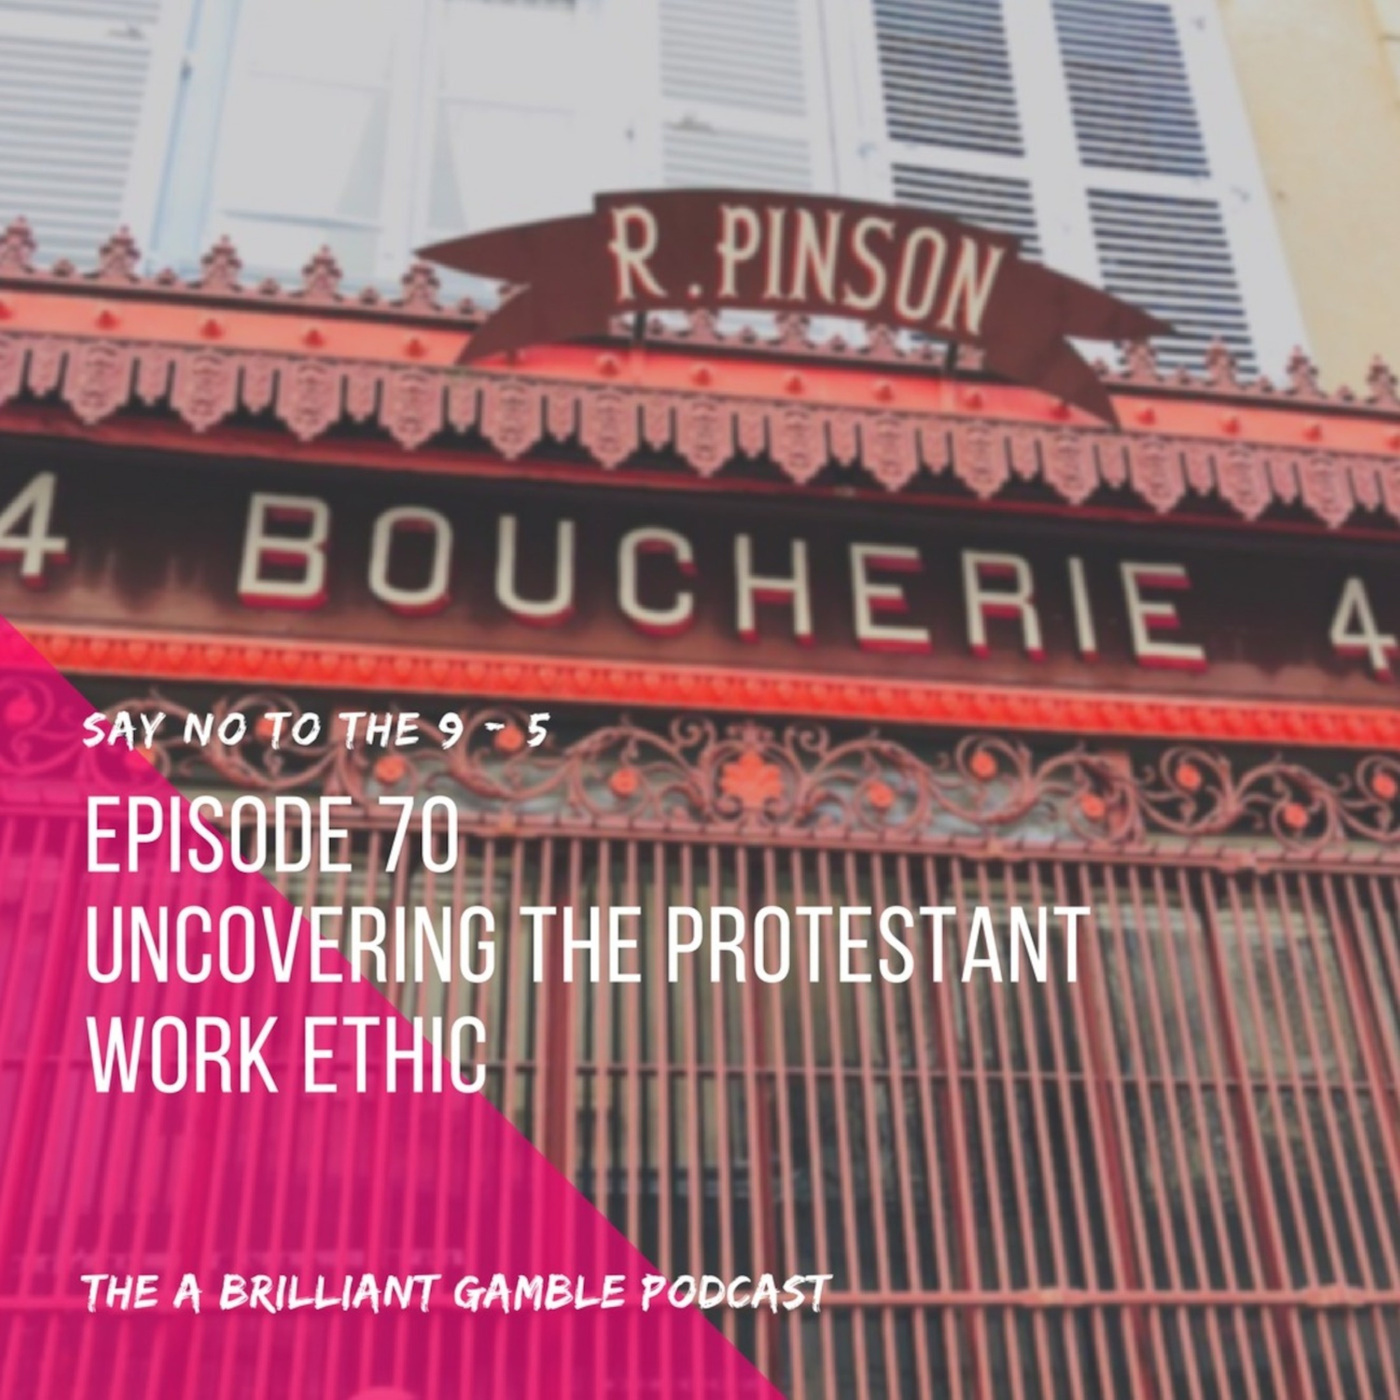 Episode 70: Uncovering the Protestant Work Ethic